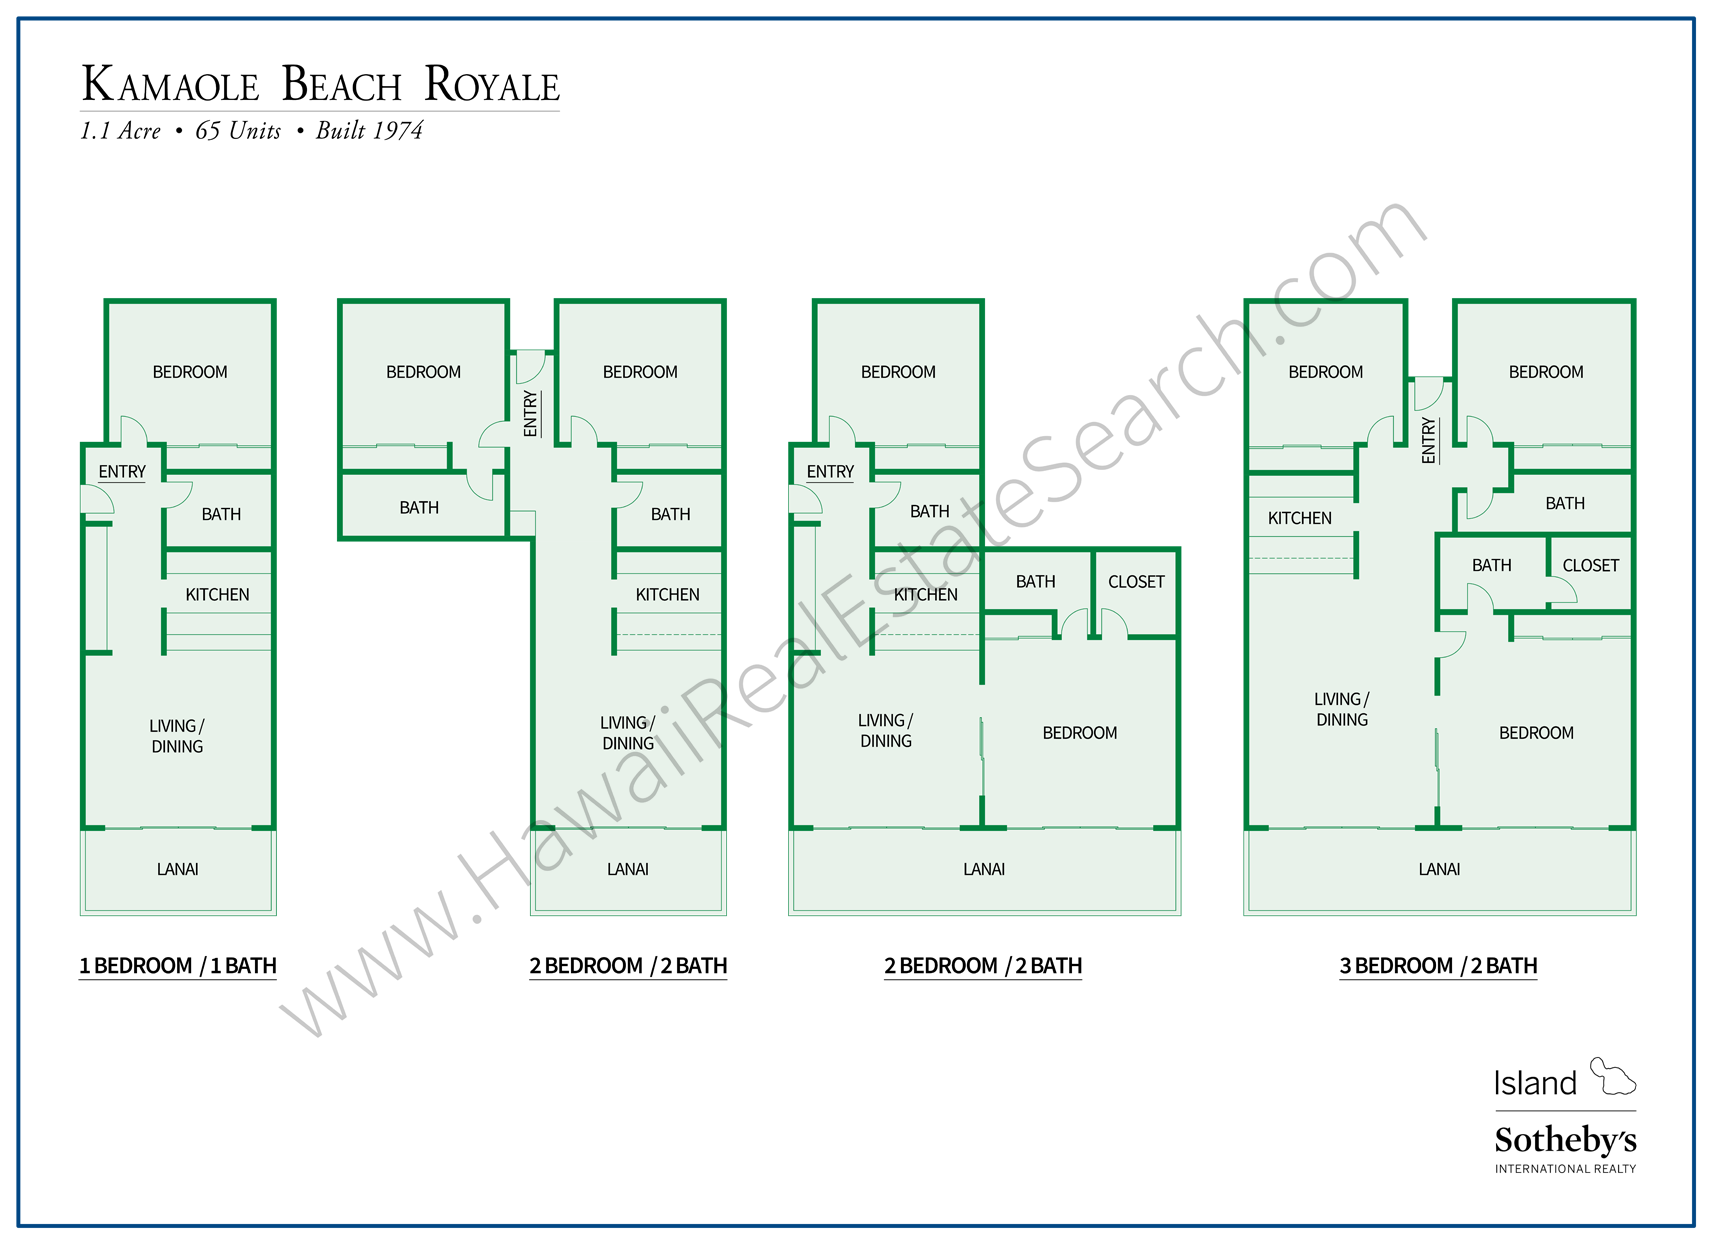 Kamaole Beach Royale Floor Plans